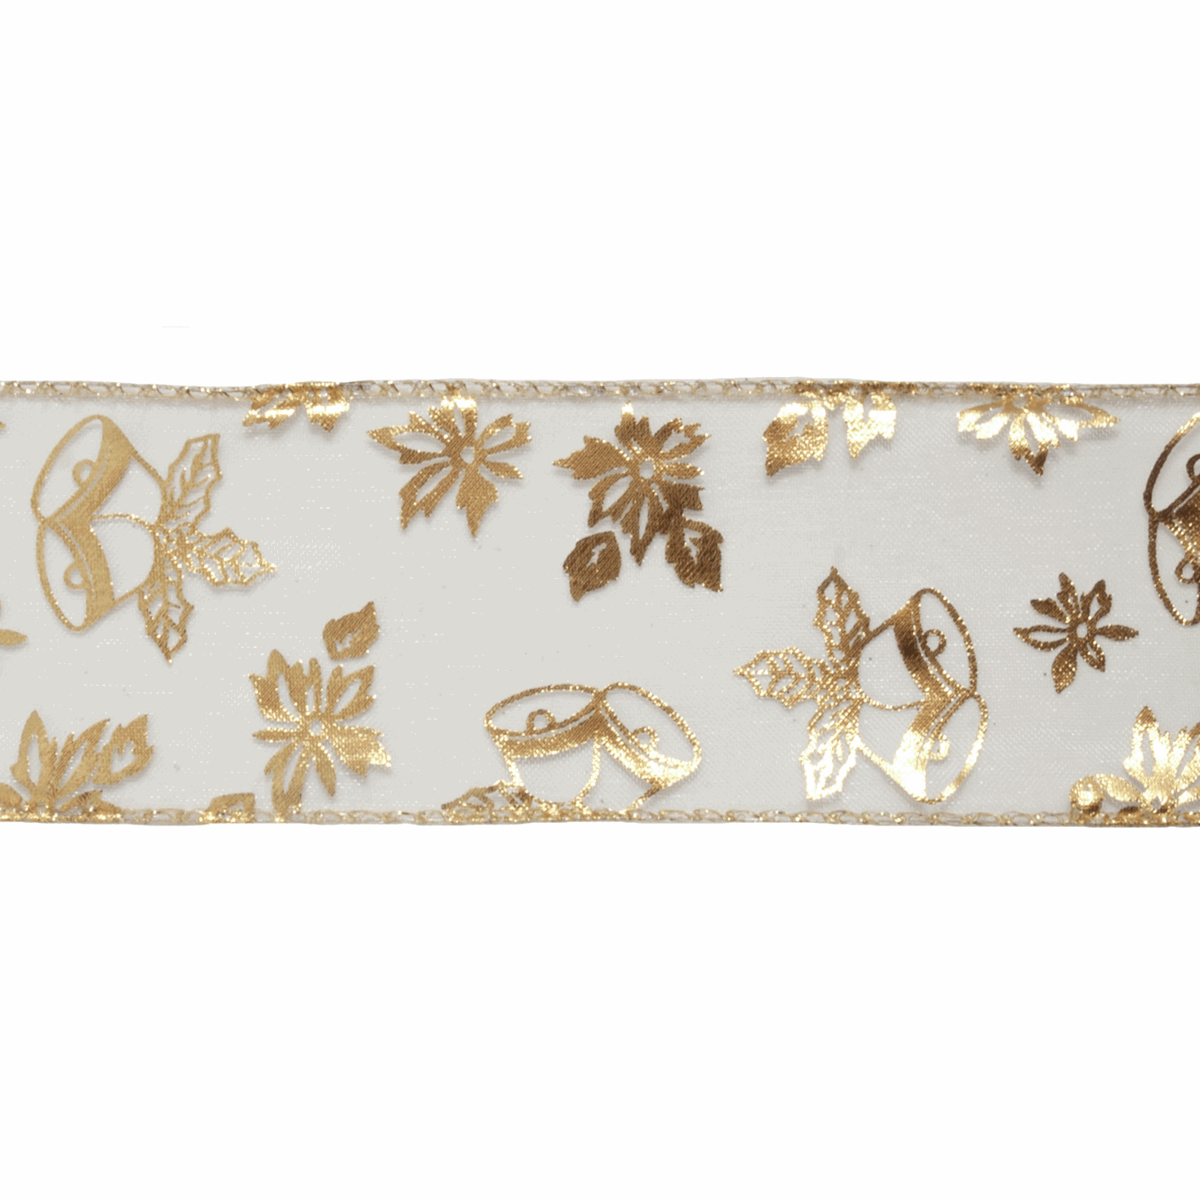 Wire Edge Ribbon Chirstmas Gold Bells and Poinsettia Xmas Festive 38mm wide